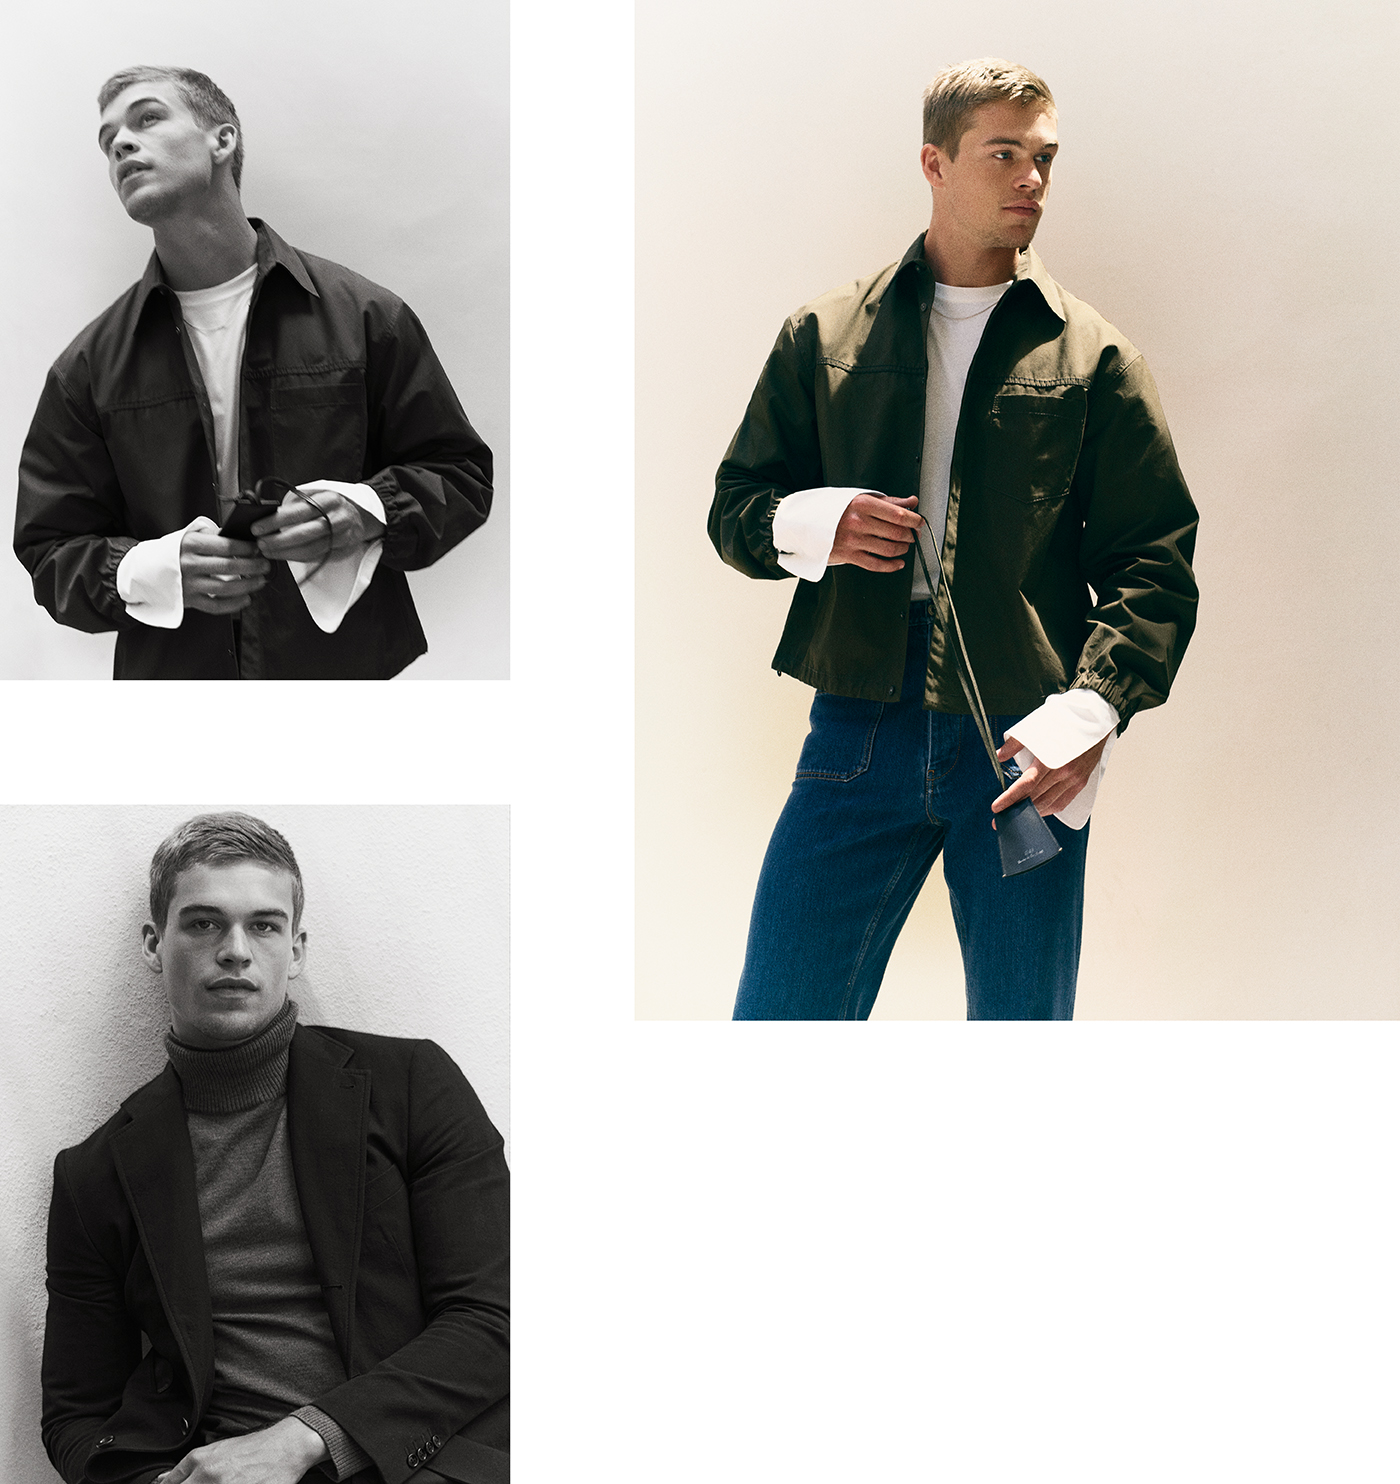 Top: Jacket by 3.1 Phillip Lim. Shirt by Dries Van Noten. Jeans by Loewe.Bottom left:  Jacket by Hermès. Sweater by A.P.C.